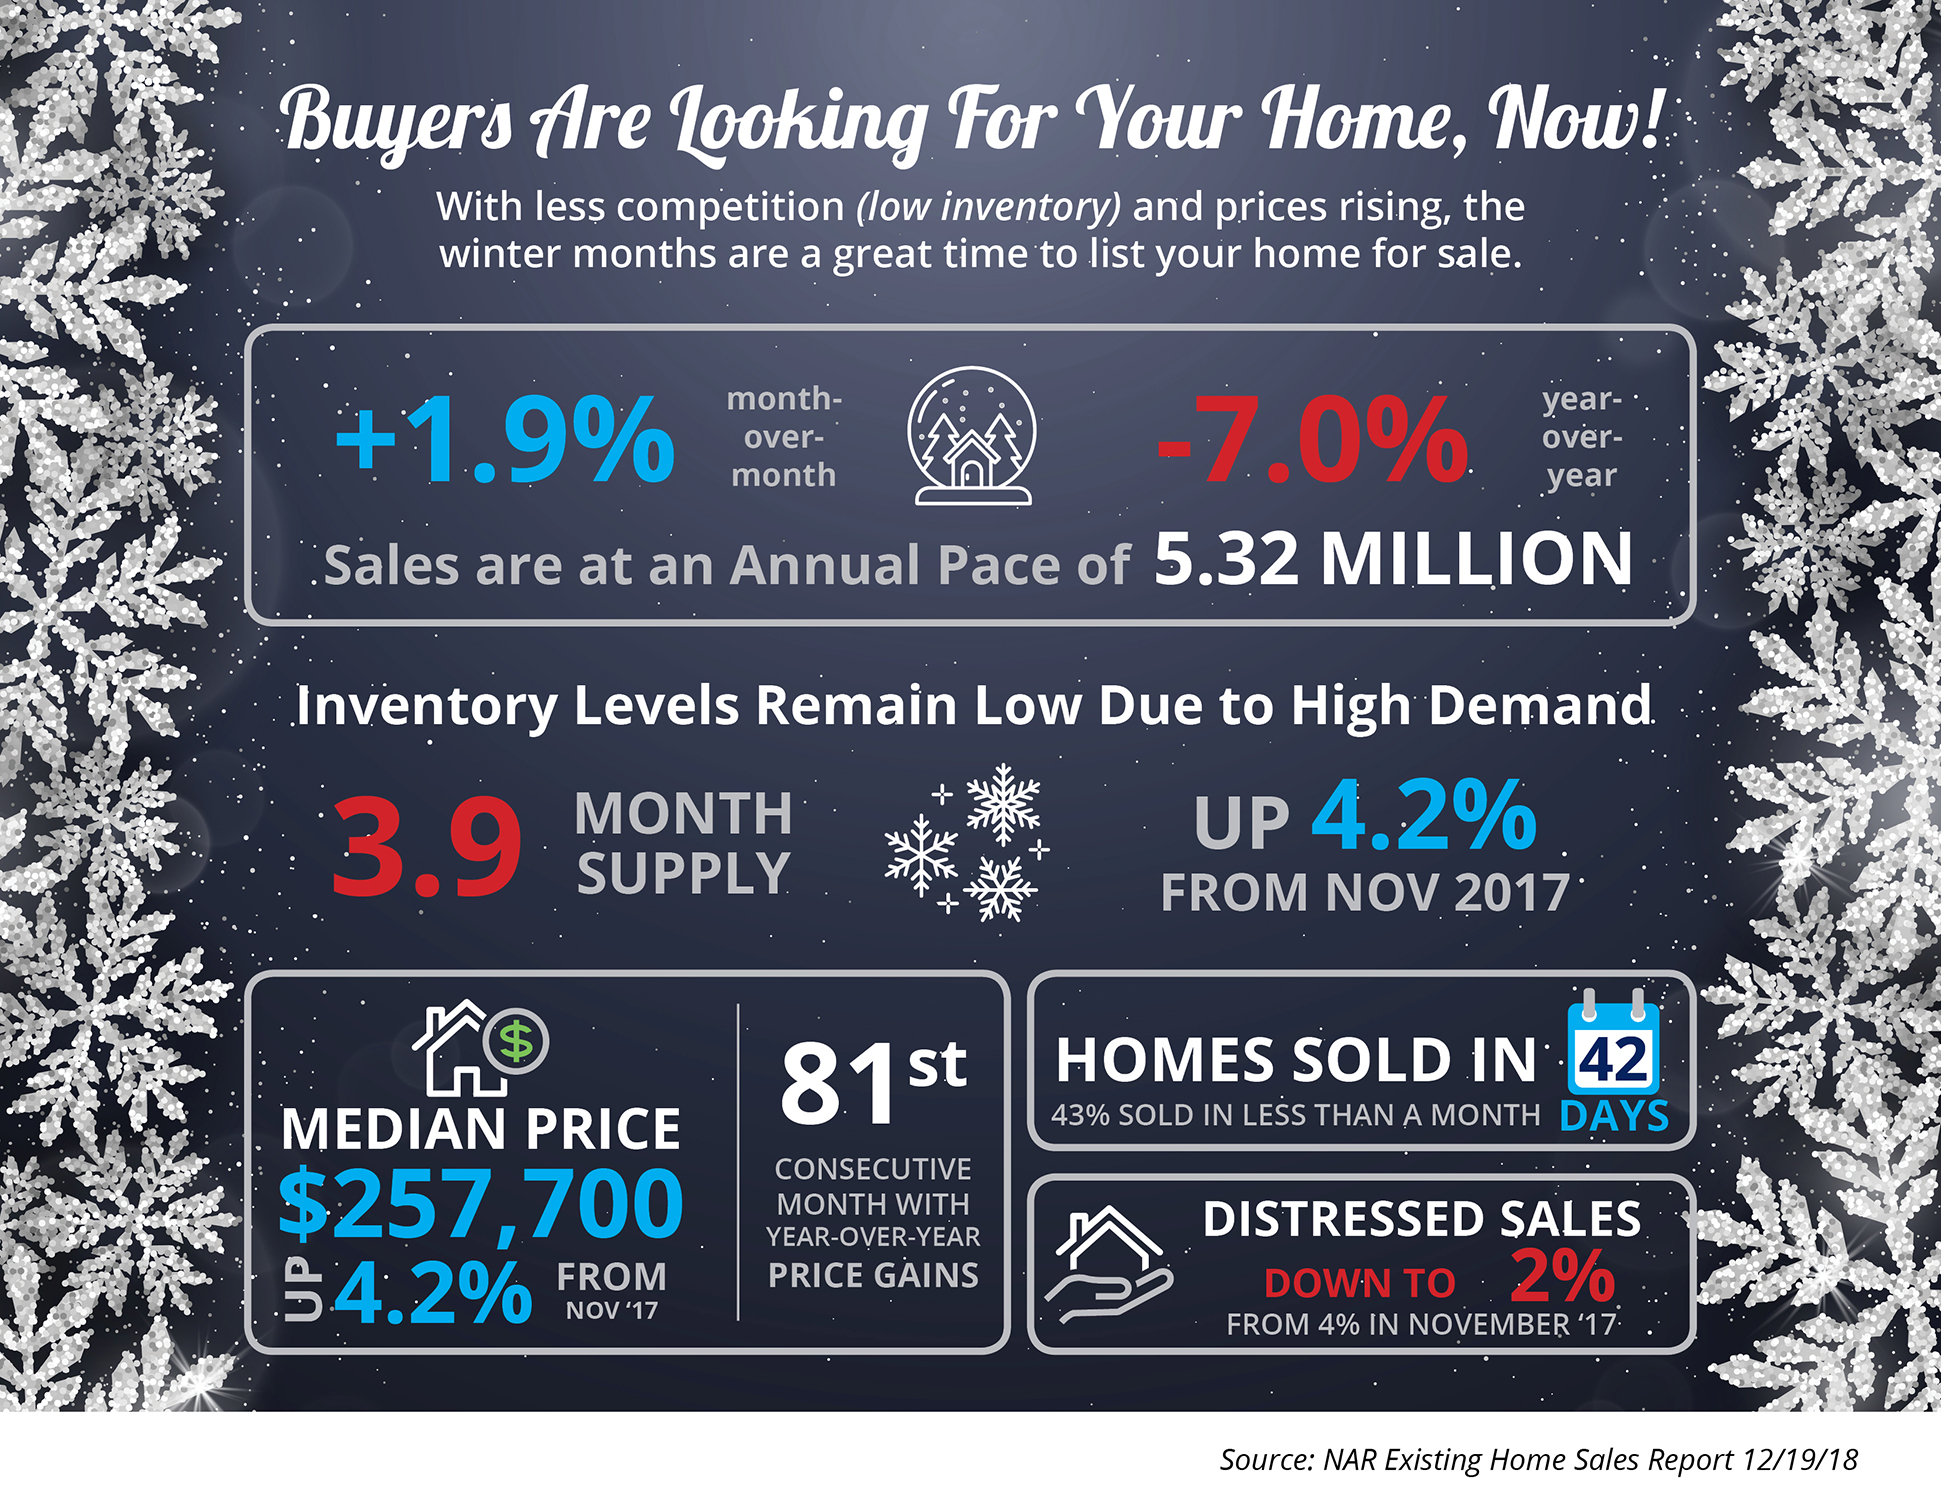 Buyers Are Looking for Your Home, Now [INFOGRAPHIC] | Bridge Builders